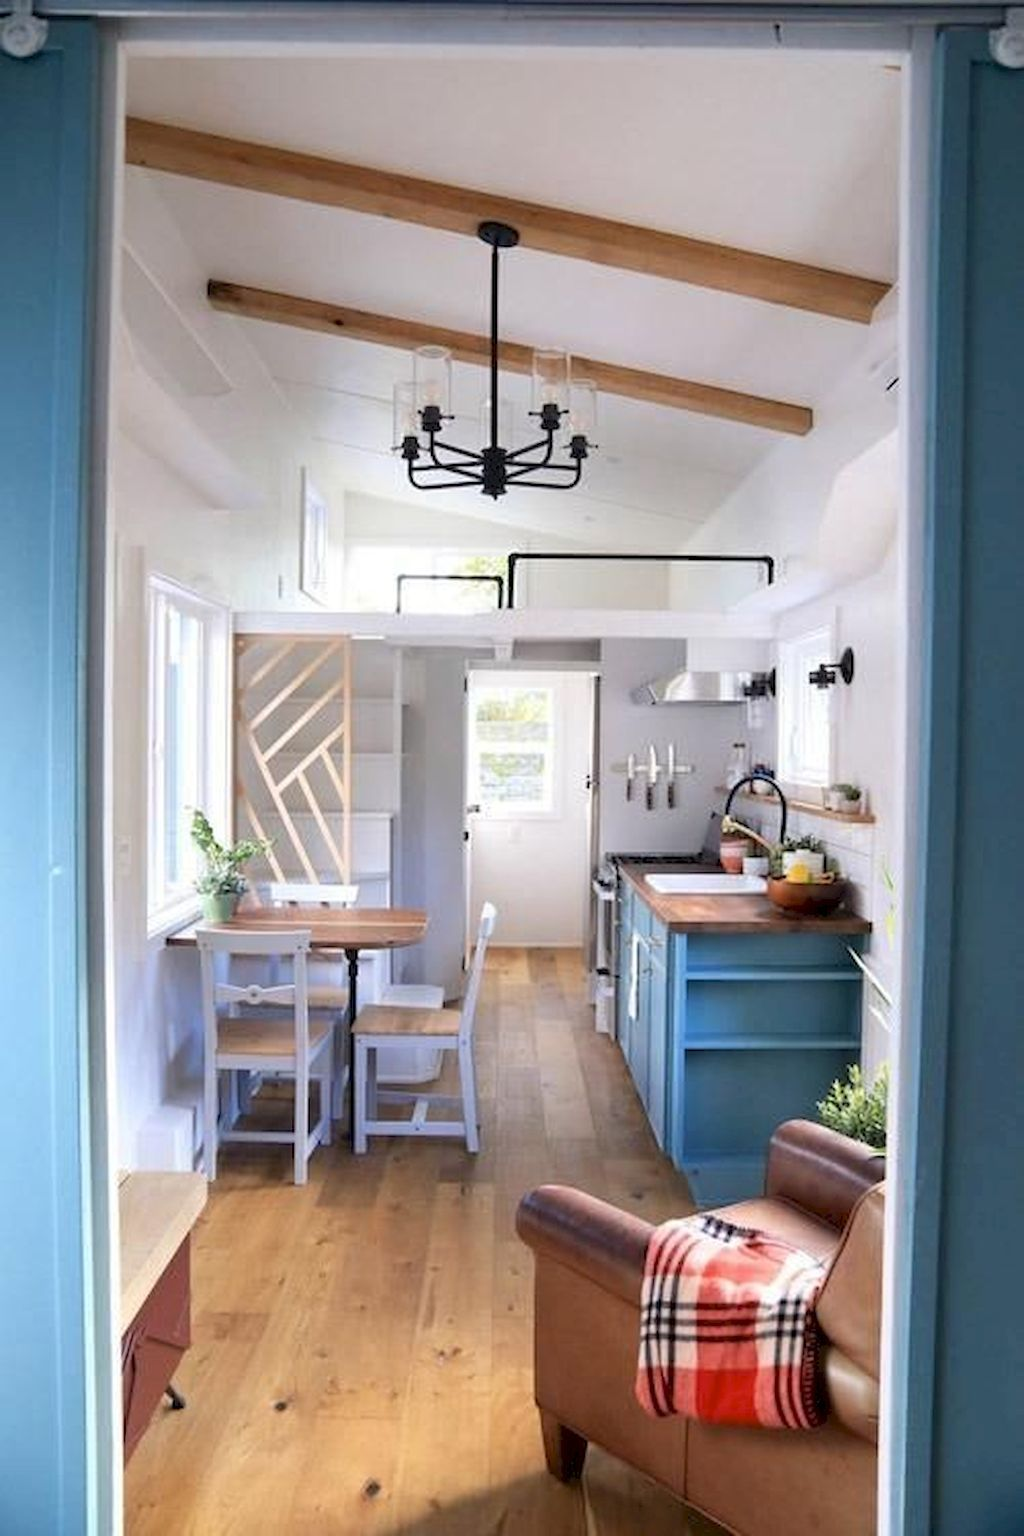 70 Tiny House Kitchen Storage Organization and Tips Ideas - Insidexterior #tinyhousestorage